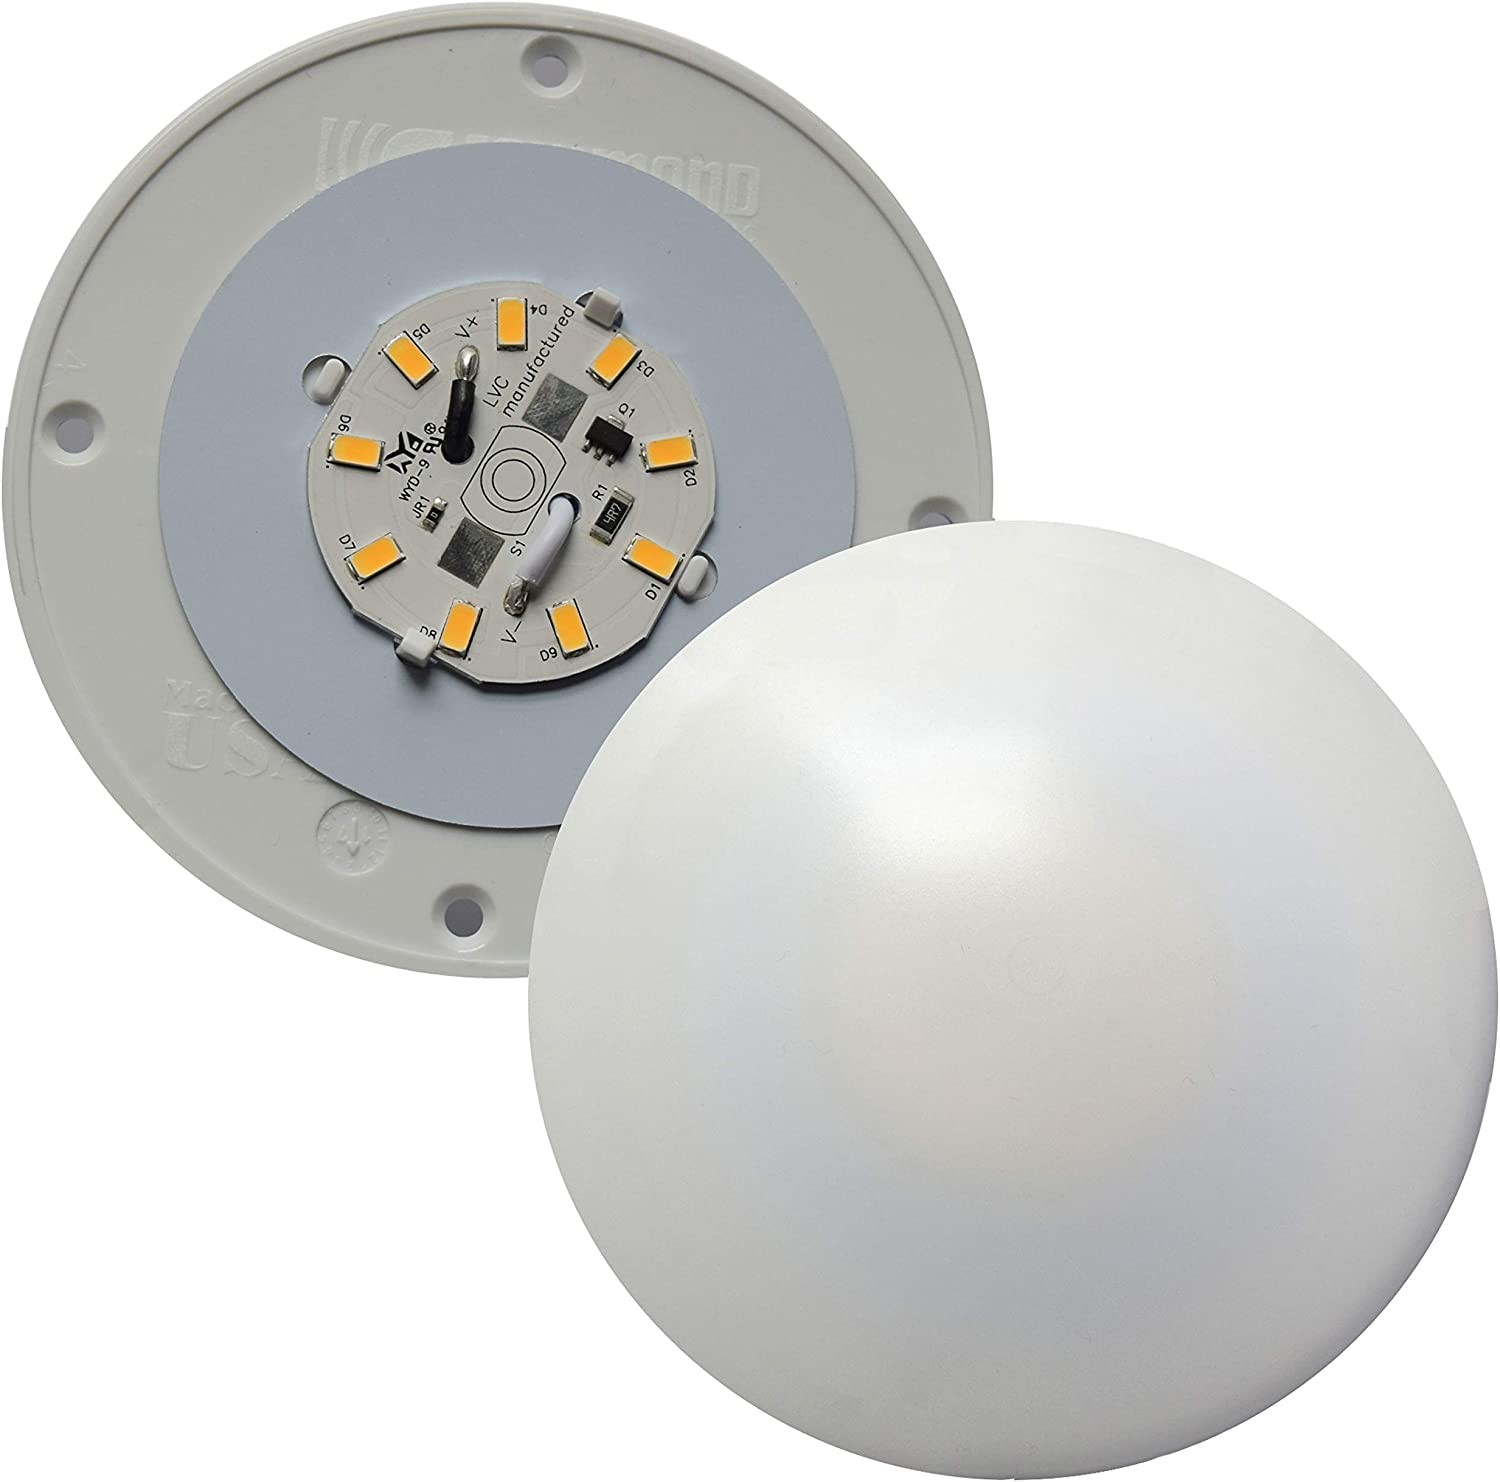 fasteners unlimited 001 1050 undercabinet led light 4\